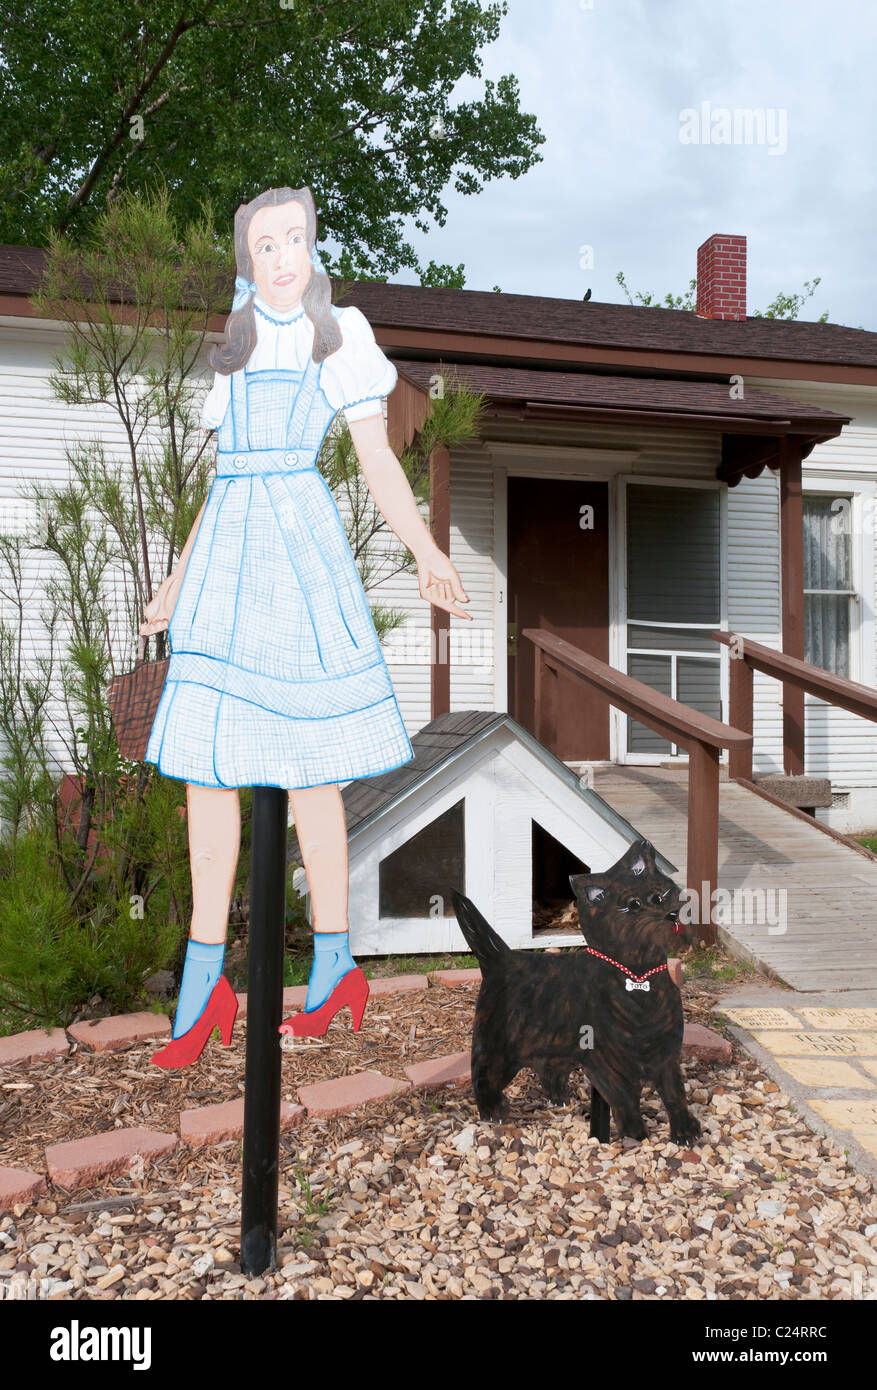 Kansas Liberal Dorothys House Replica Of Fictional Farmhouse Depicted In 1939 Motion Picture The Wizard Oz